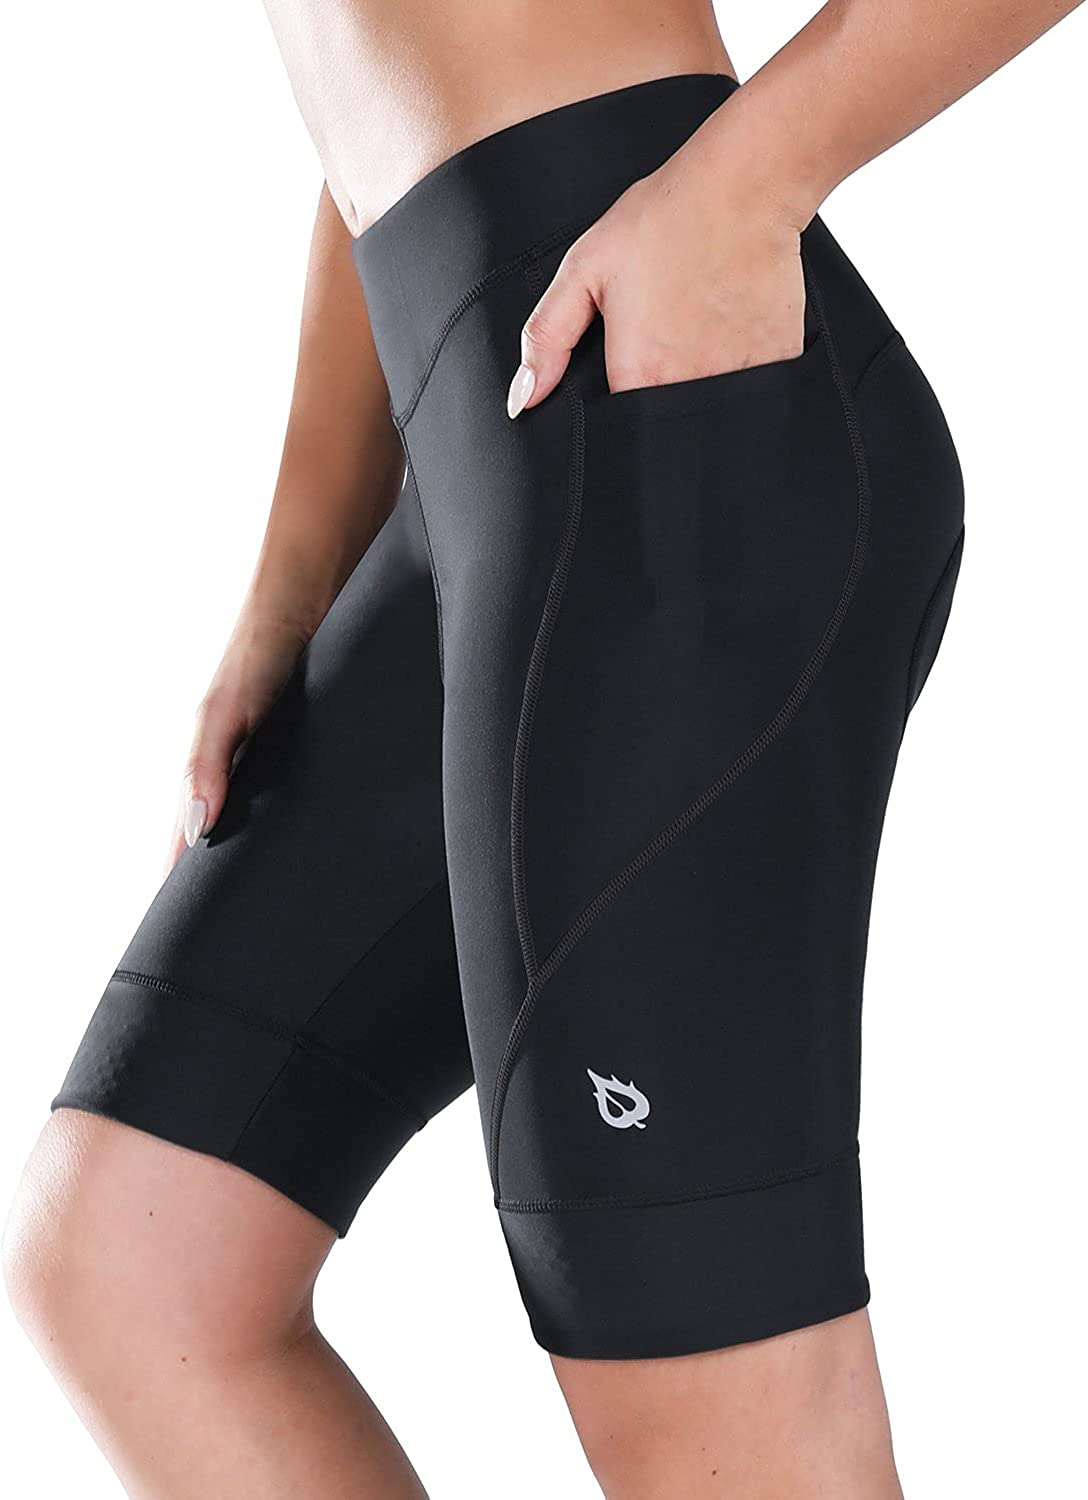 BALEAF Women's Bike Shorts Max 44% OFF Los Angeles Mall 4D Spinning Cycling Padded Road